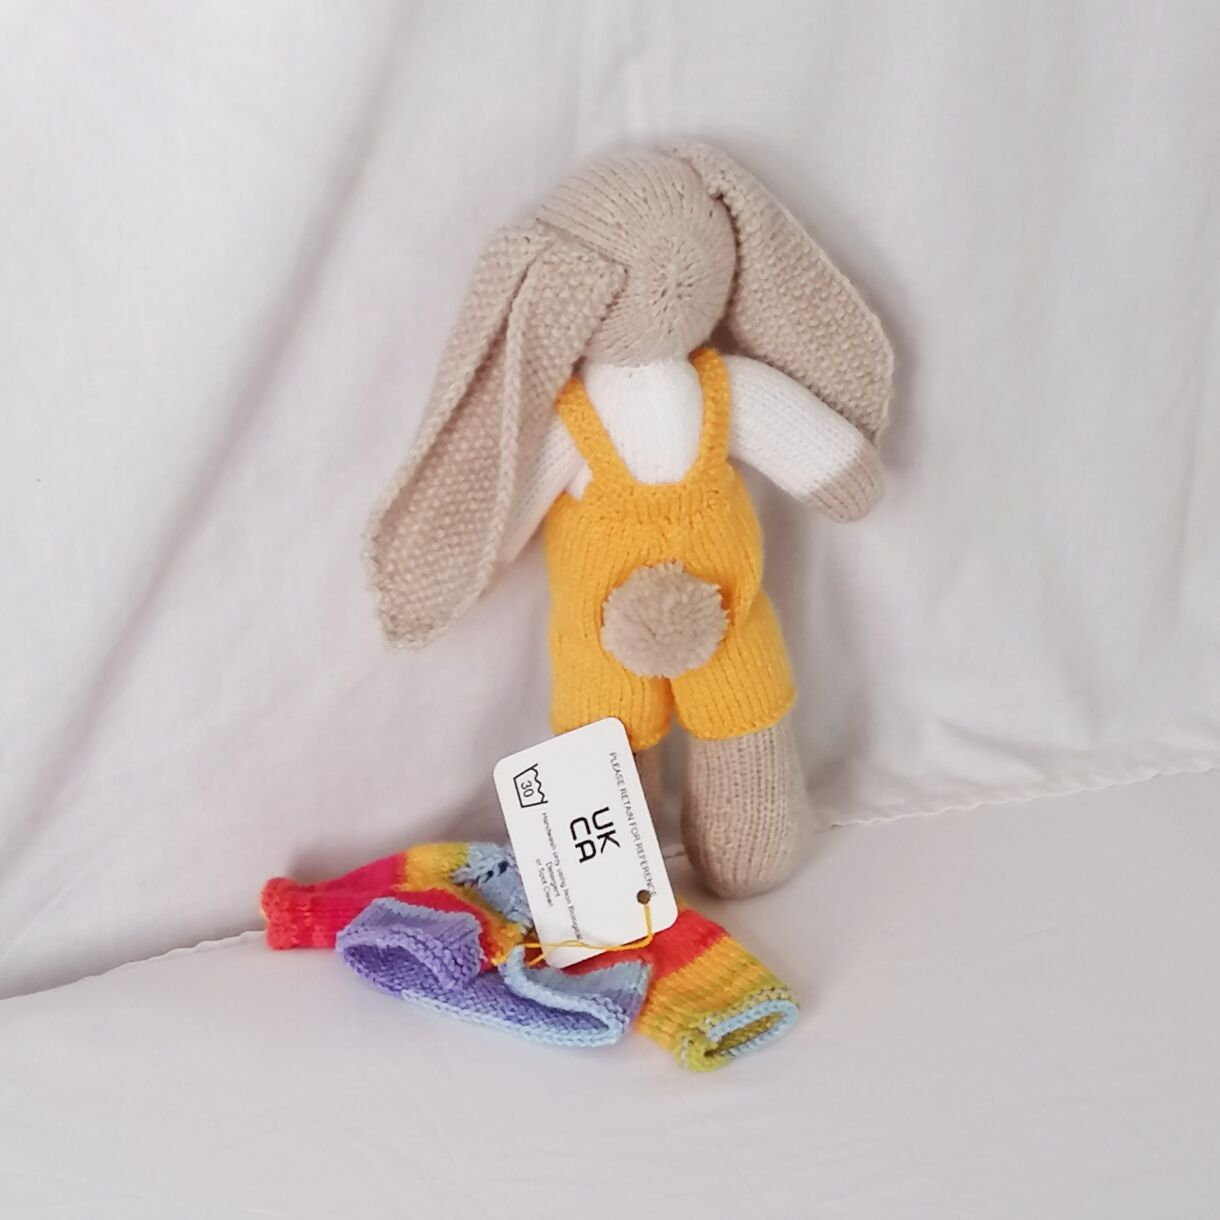 handknitted-rainbow-bunny-unique-gift-yellow-back-no-jacket